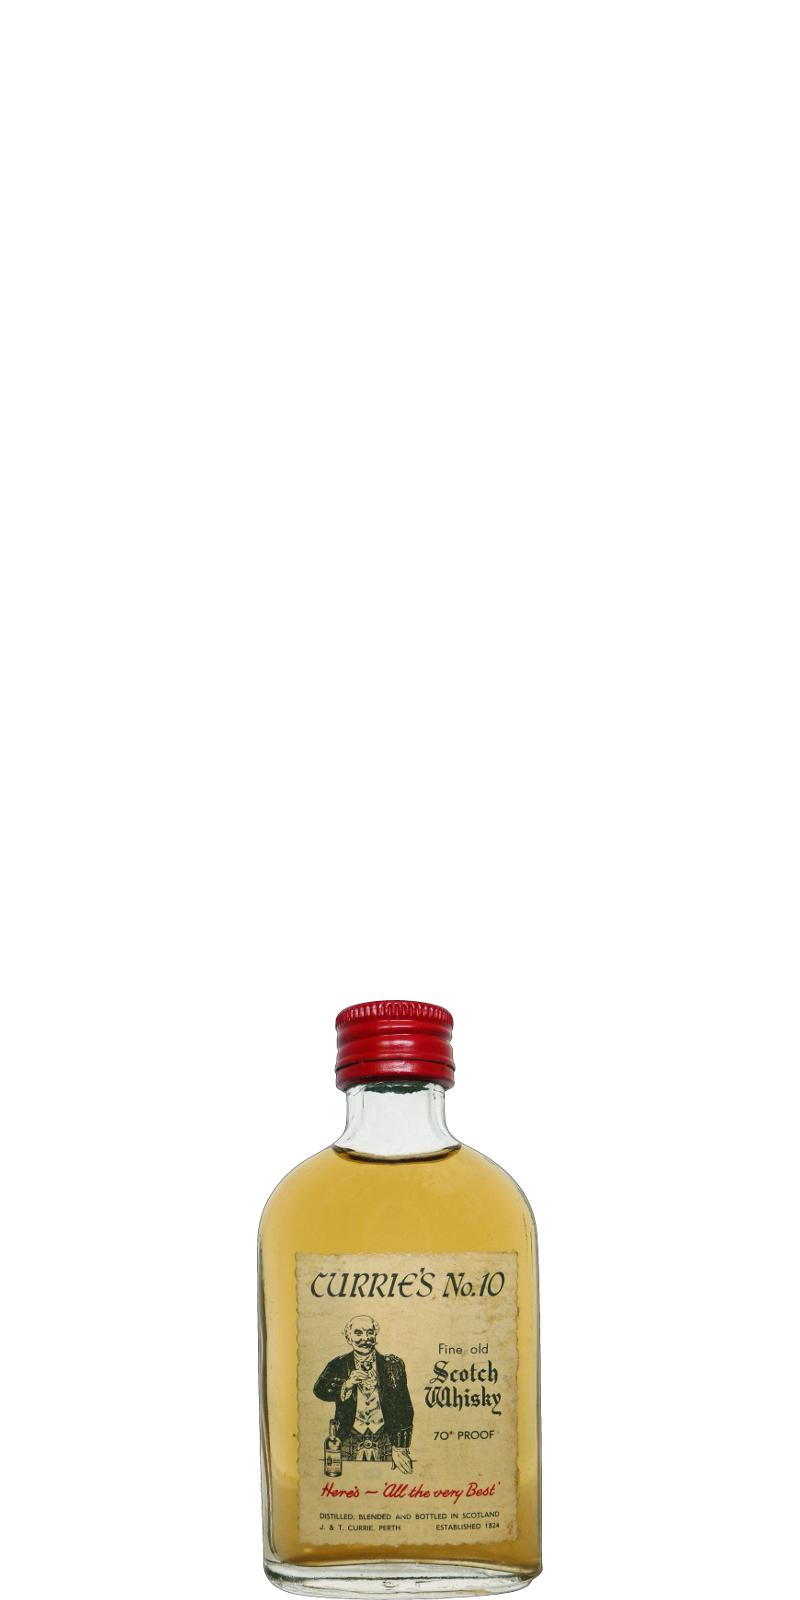 Currie's No.10 Fine Old Scotch Whisky